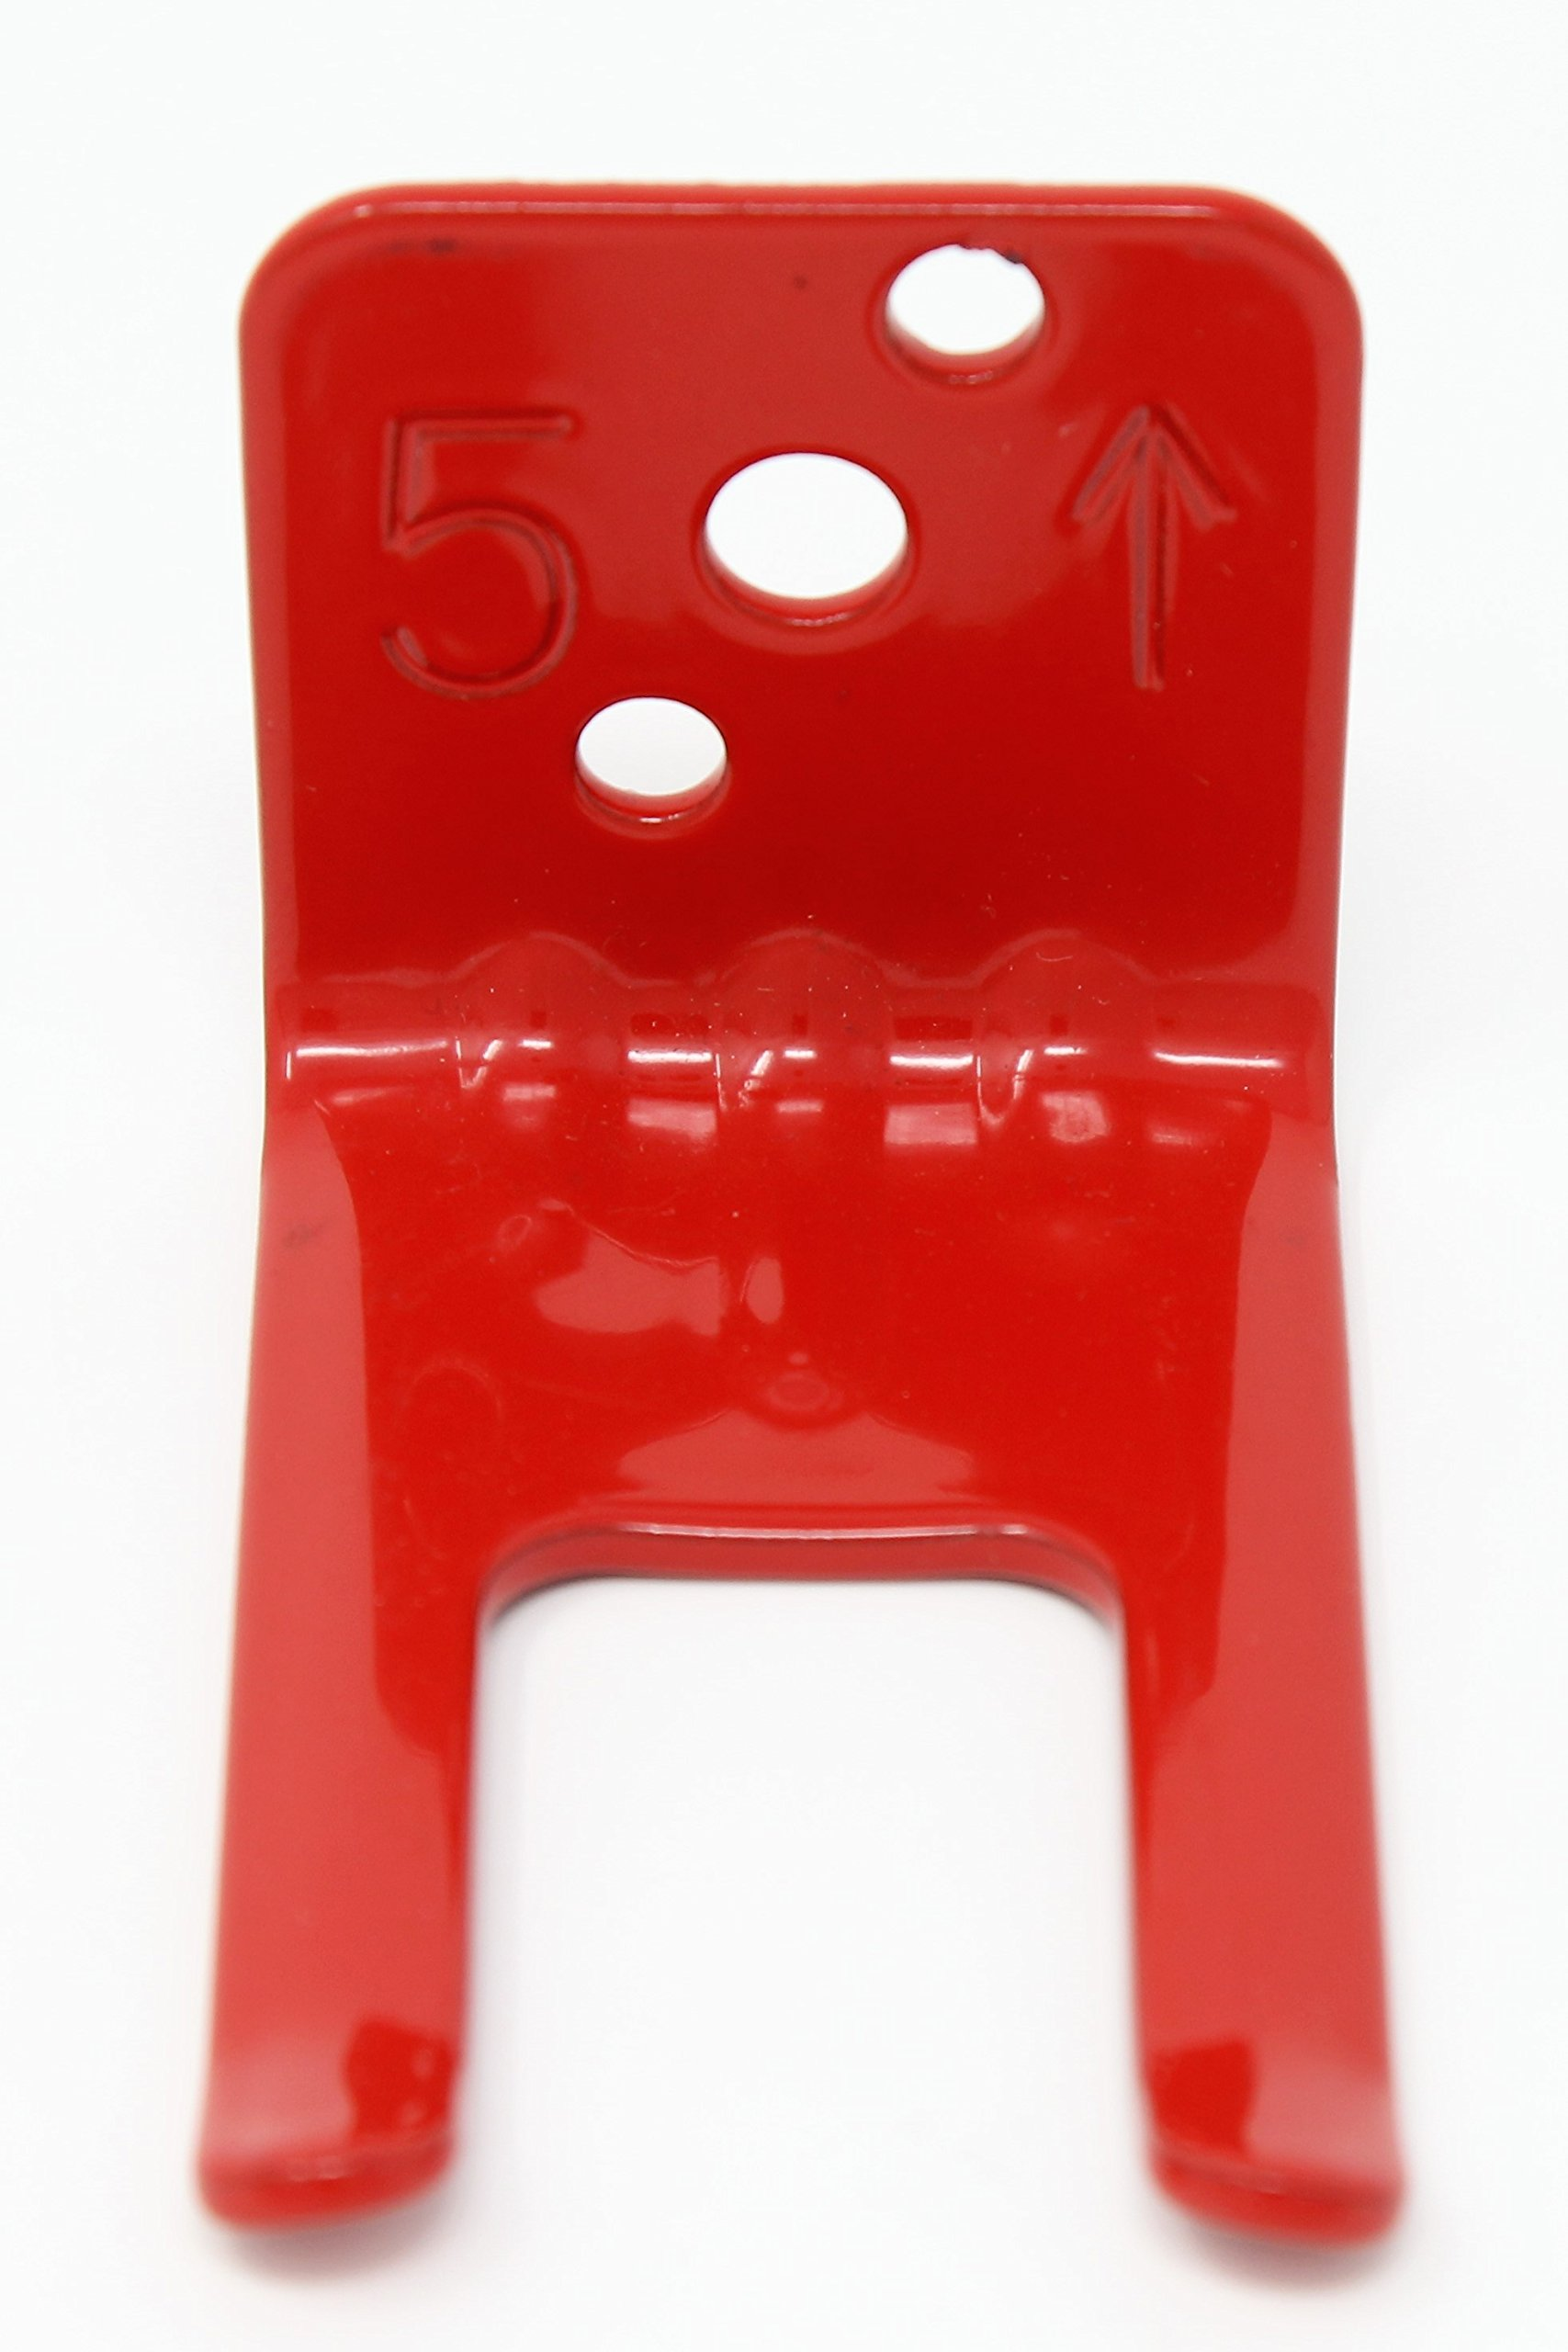 Fire Extinguisher Wall Mount - Fork Style Bracket (3, Small) by Extinguisher Experts (Image #3)